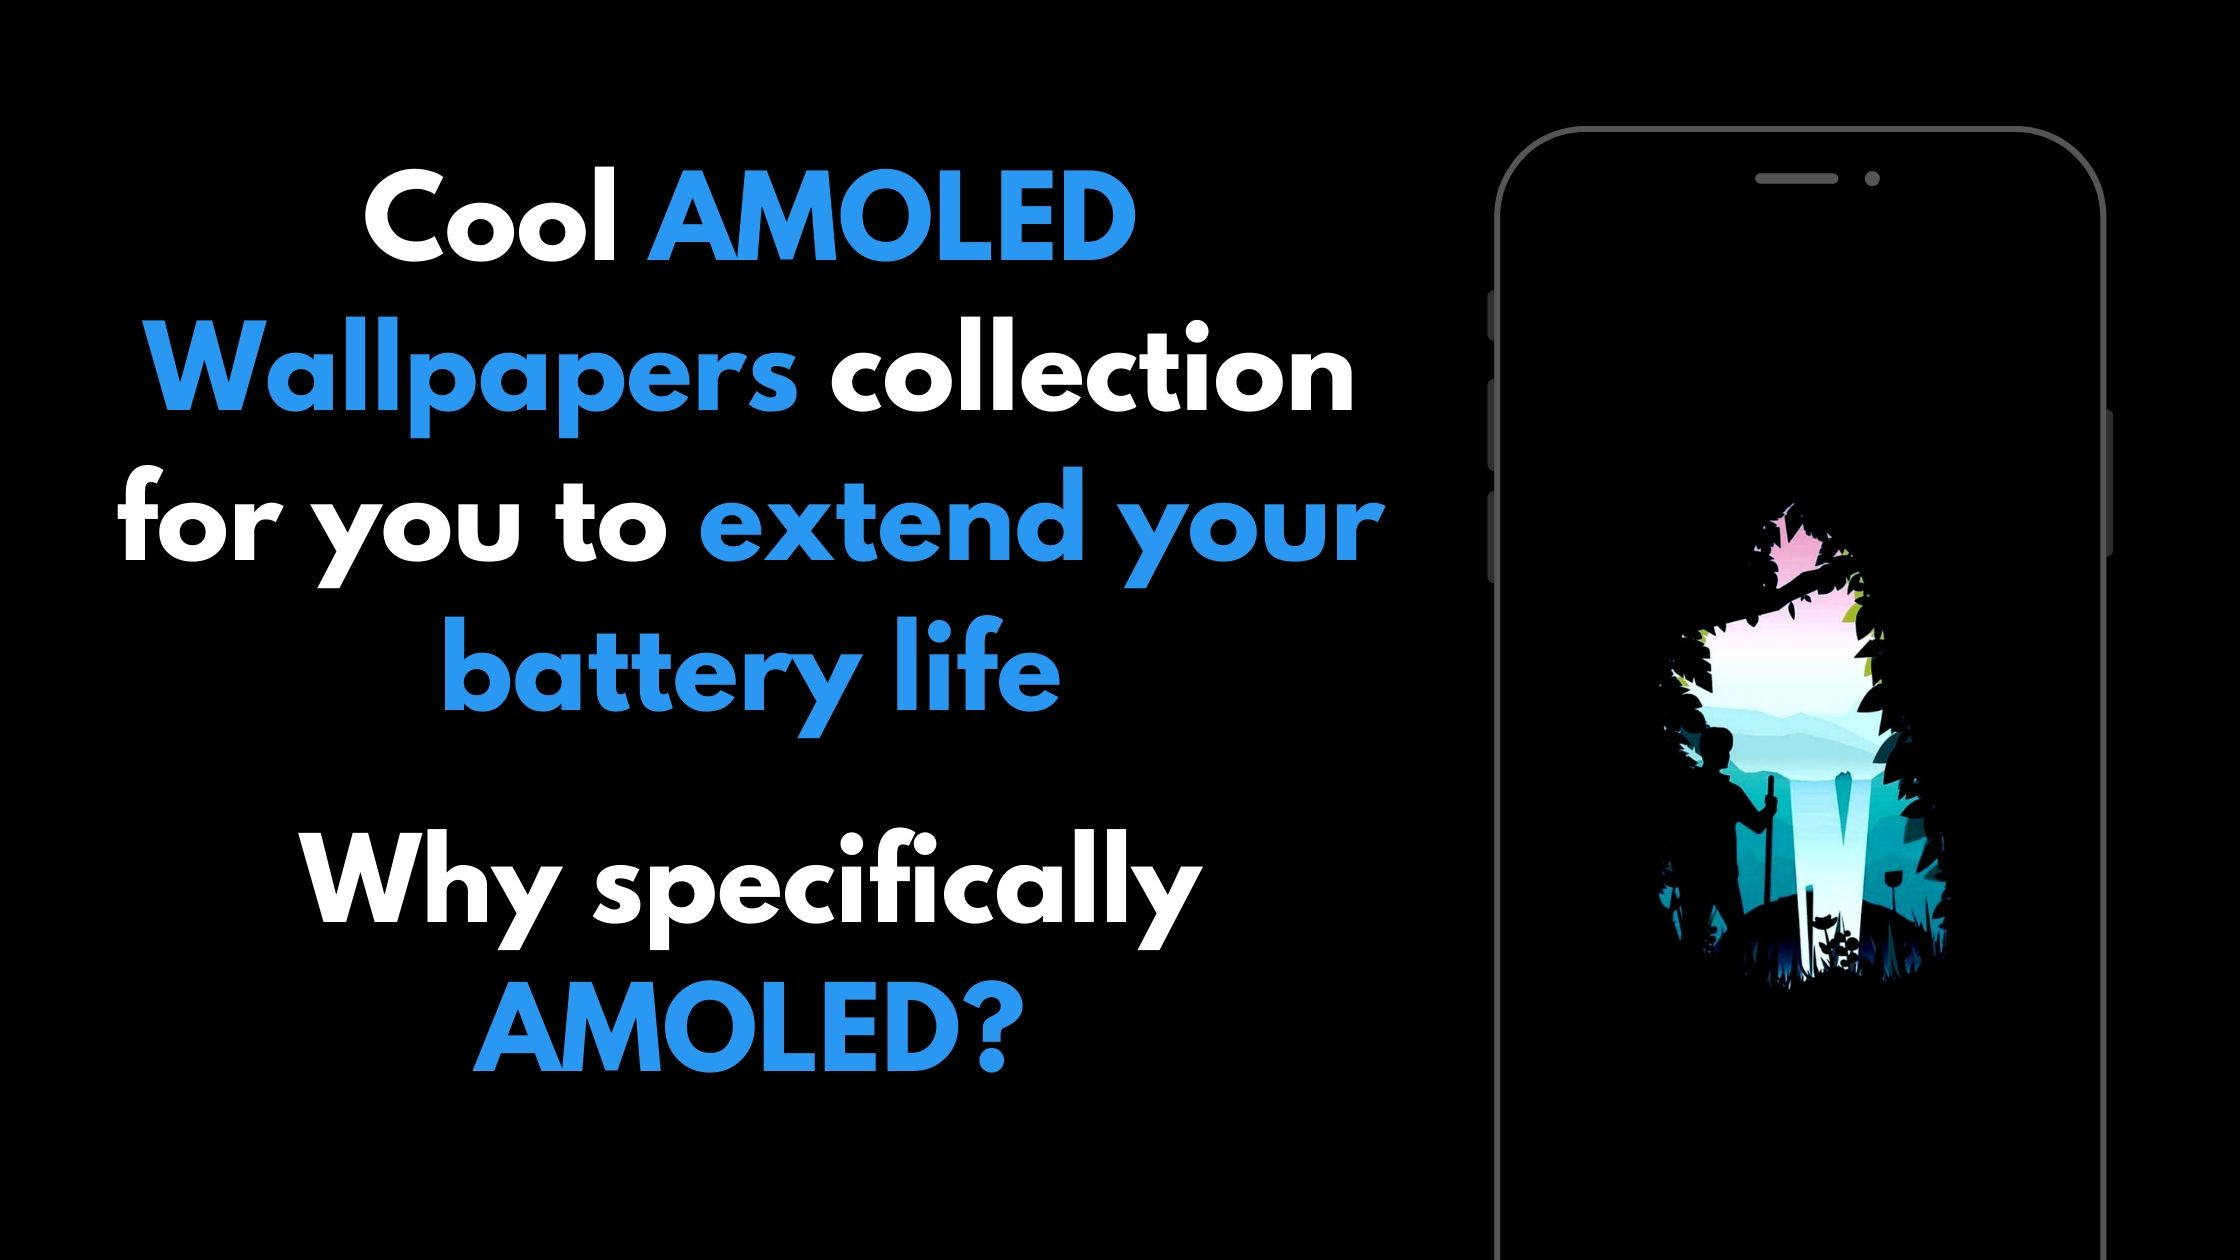 How AMOLED Wallpapers can save your battery?